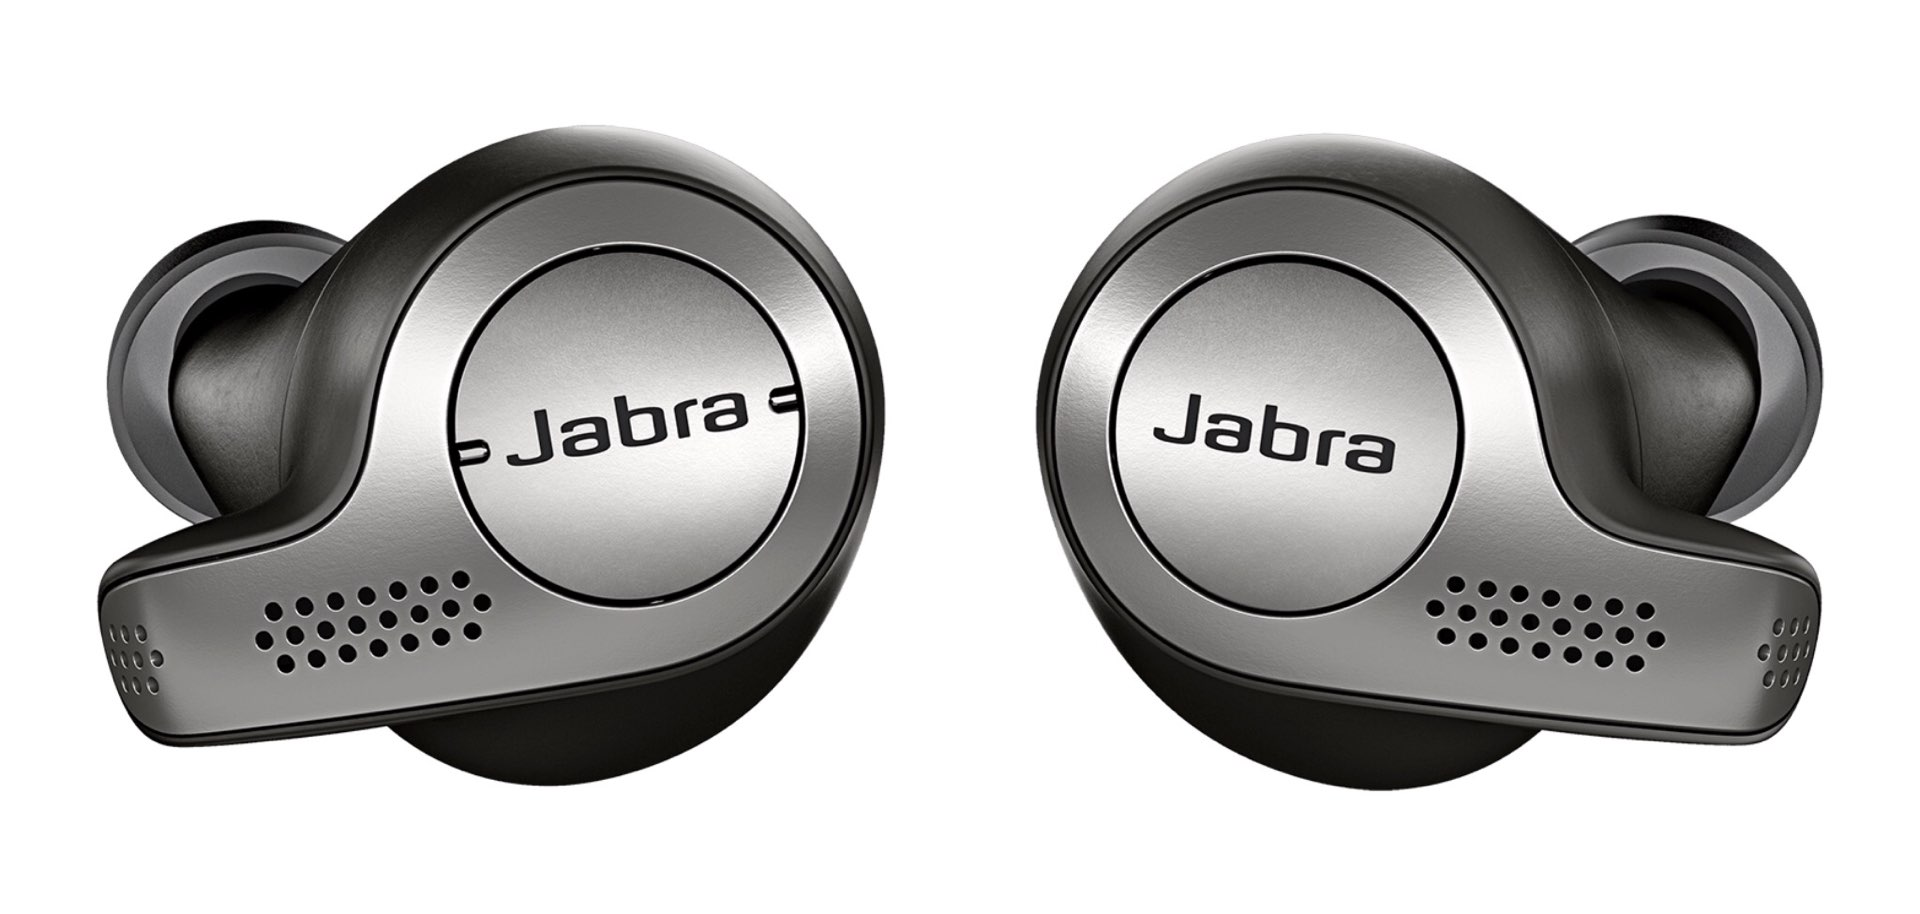 jabra-elite-65t-true-wireless-earbuds